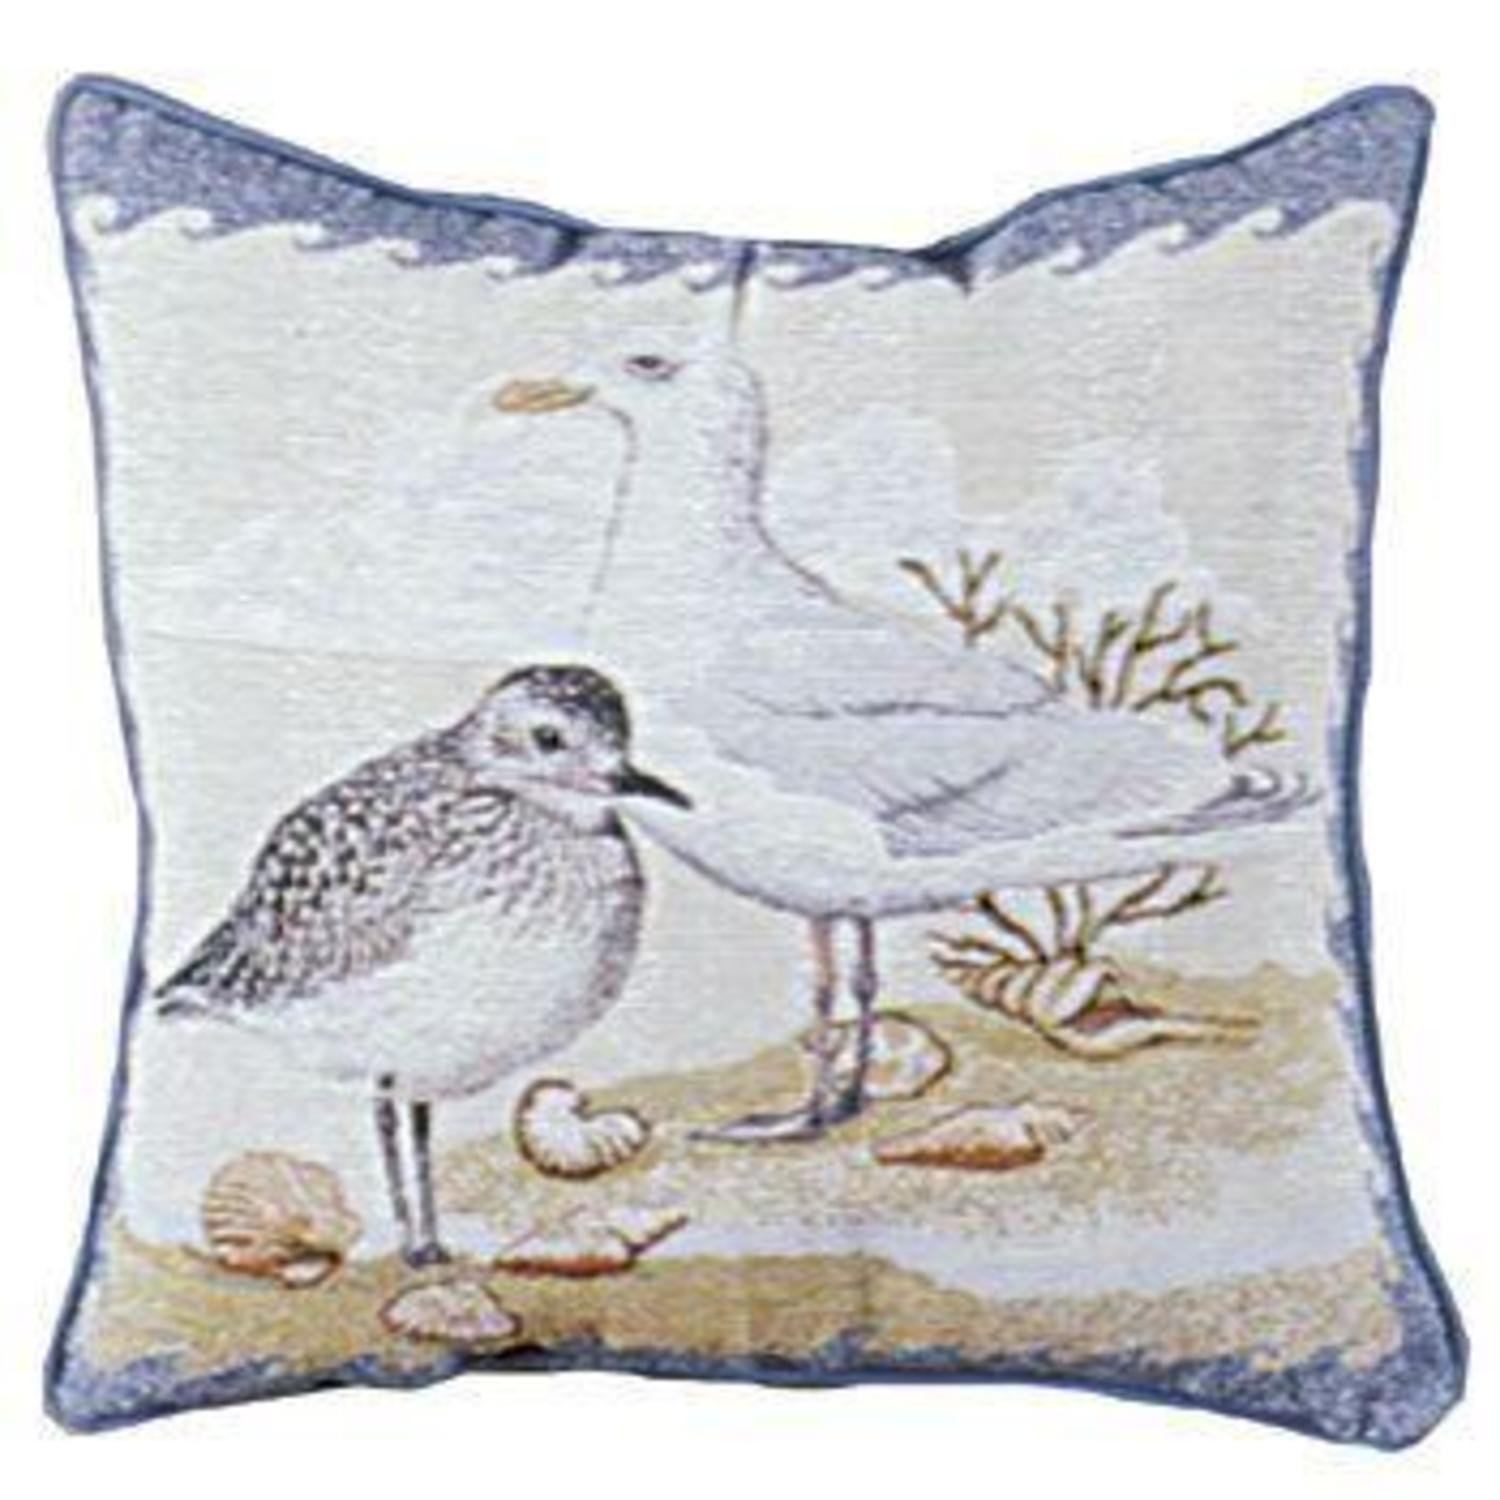 images pillows coastal malibu style on decorative beach collection n pillow decor best pinterest cushions